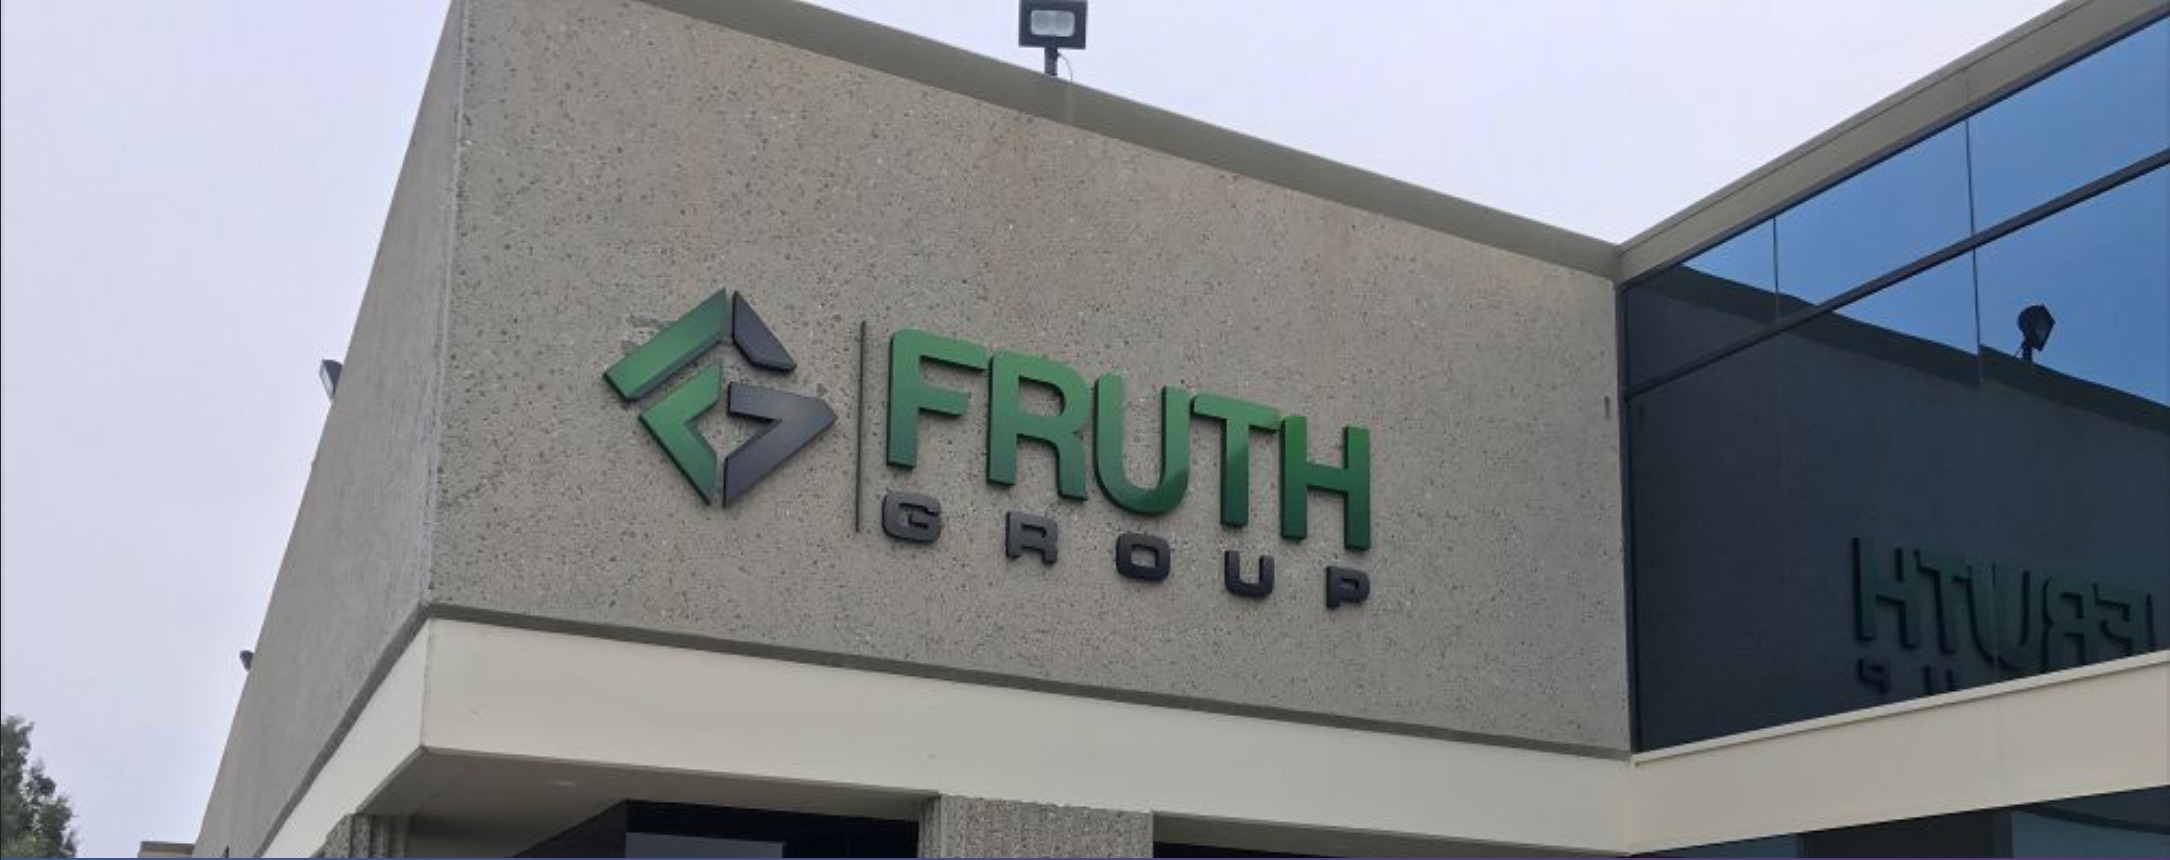 fruth building